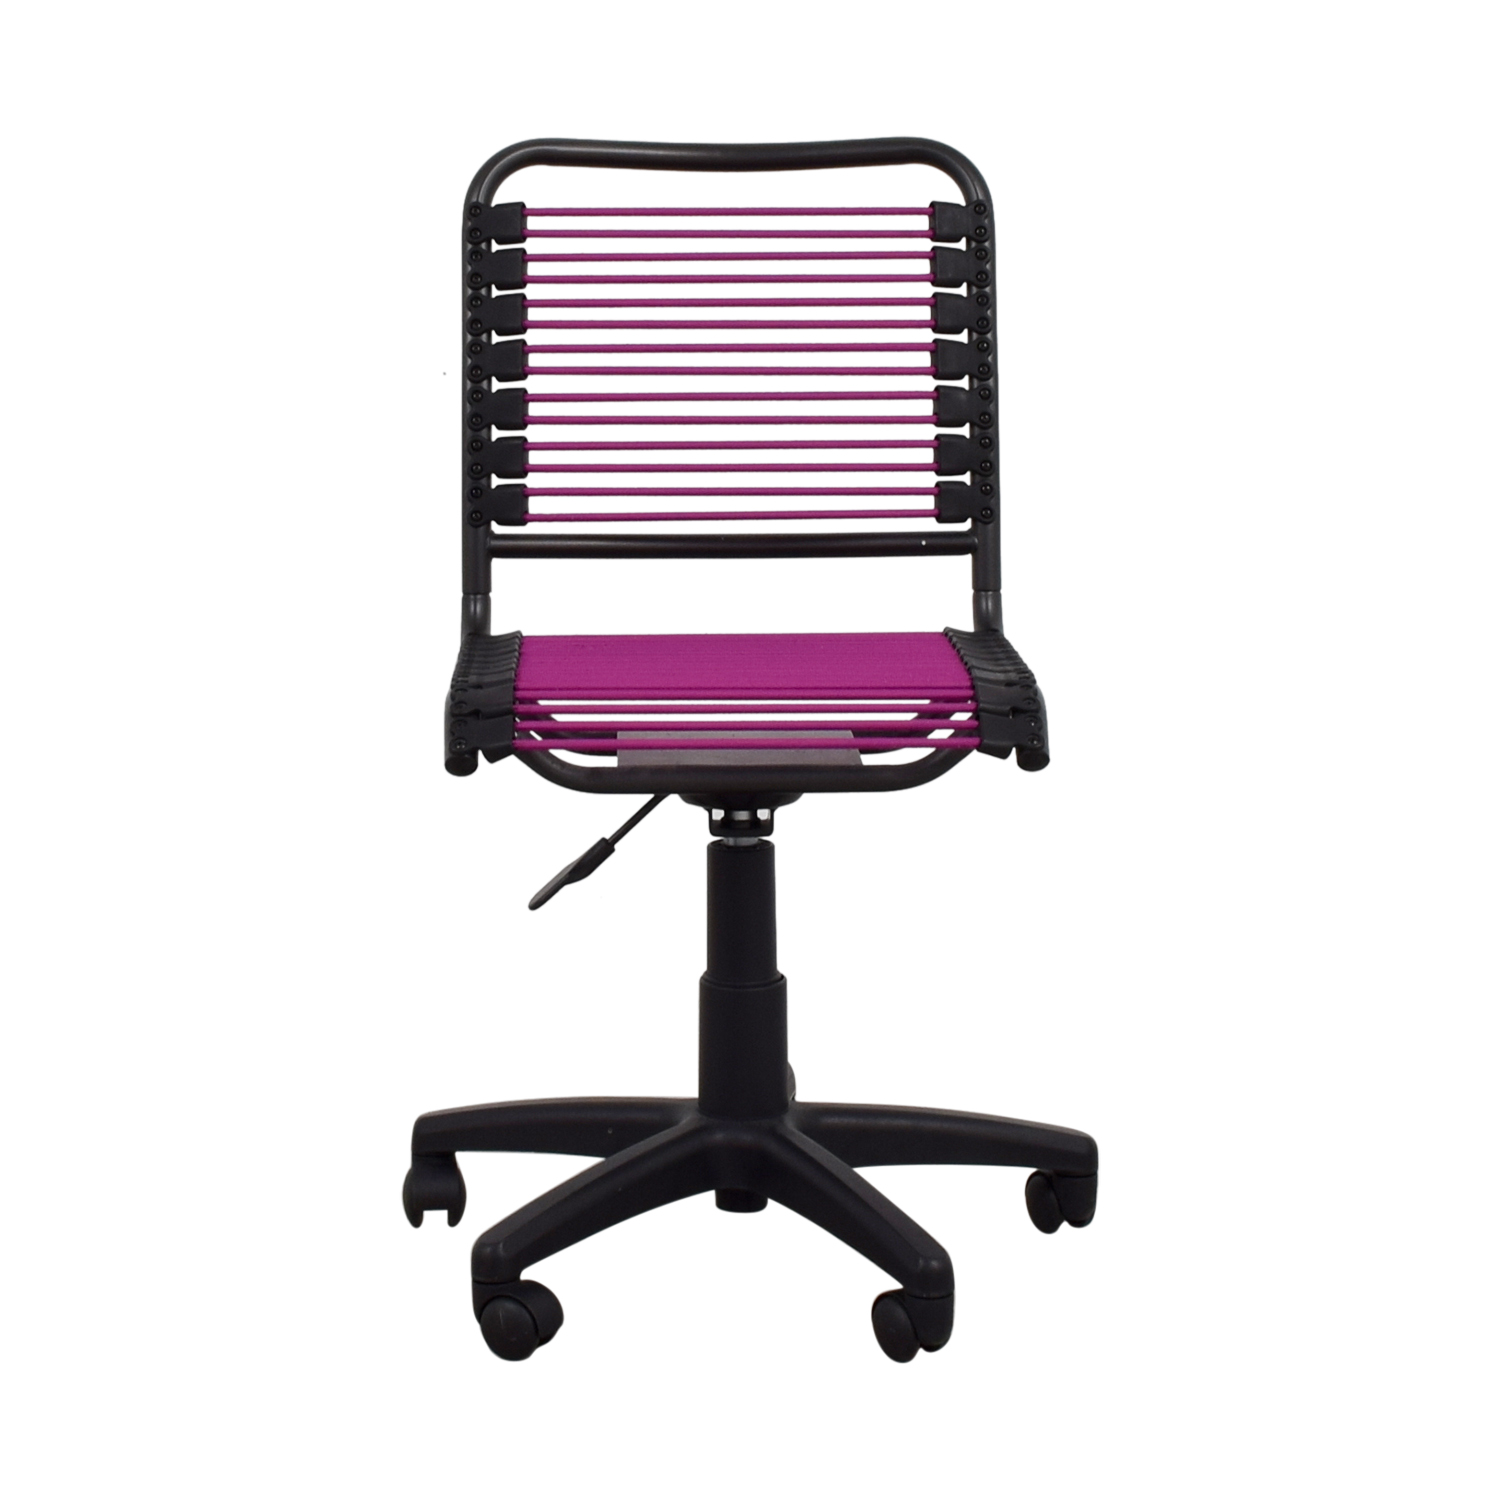 container store chair the chairman of board 86 off magenta and